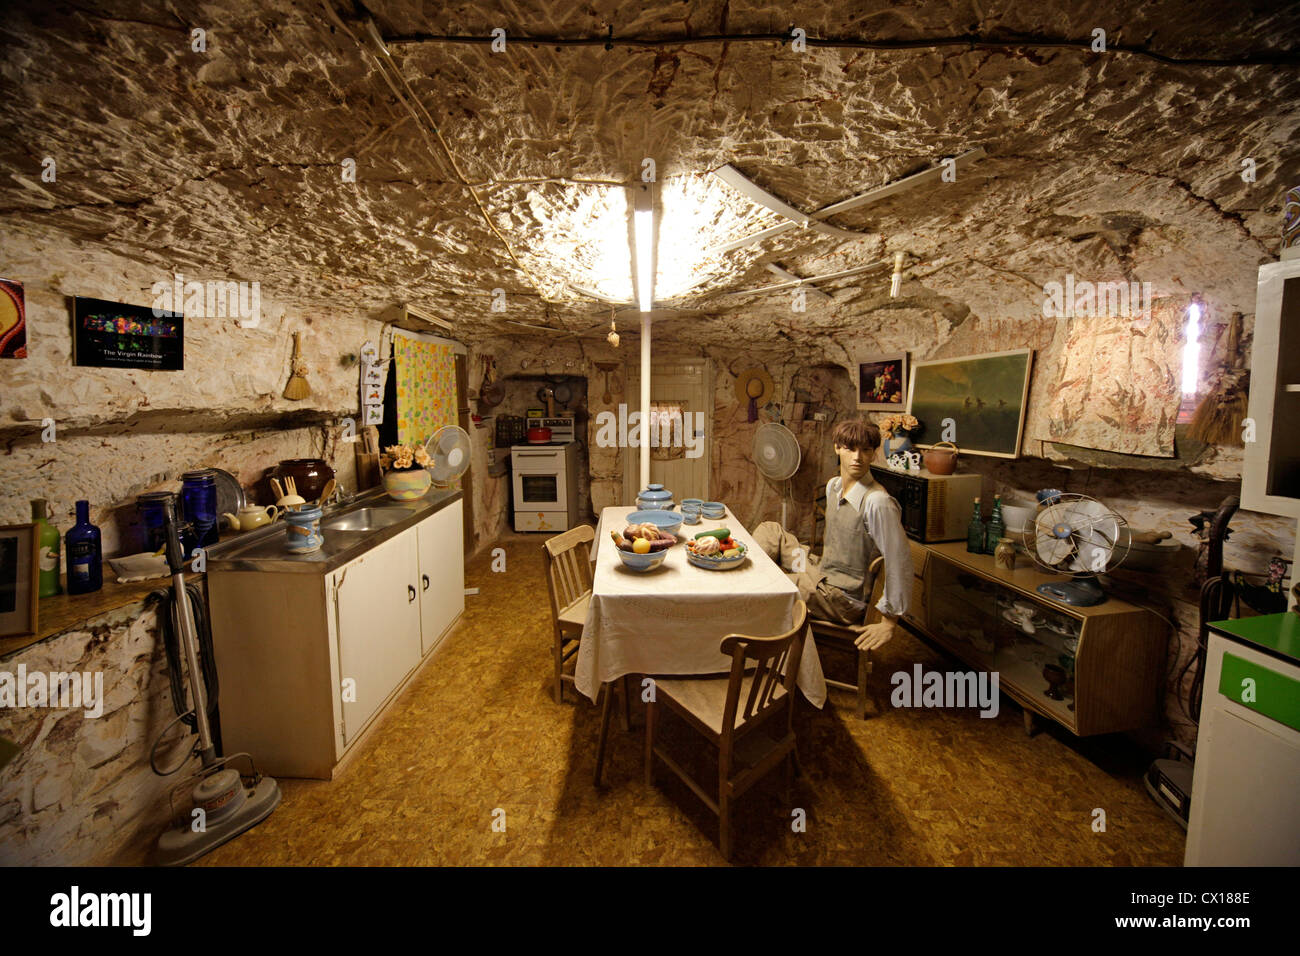 Museum Old timers Mine in Coober Pedy, South Australia, Australia - Stock Image